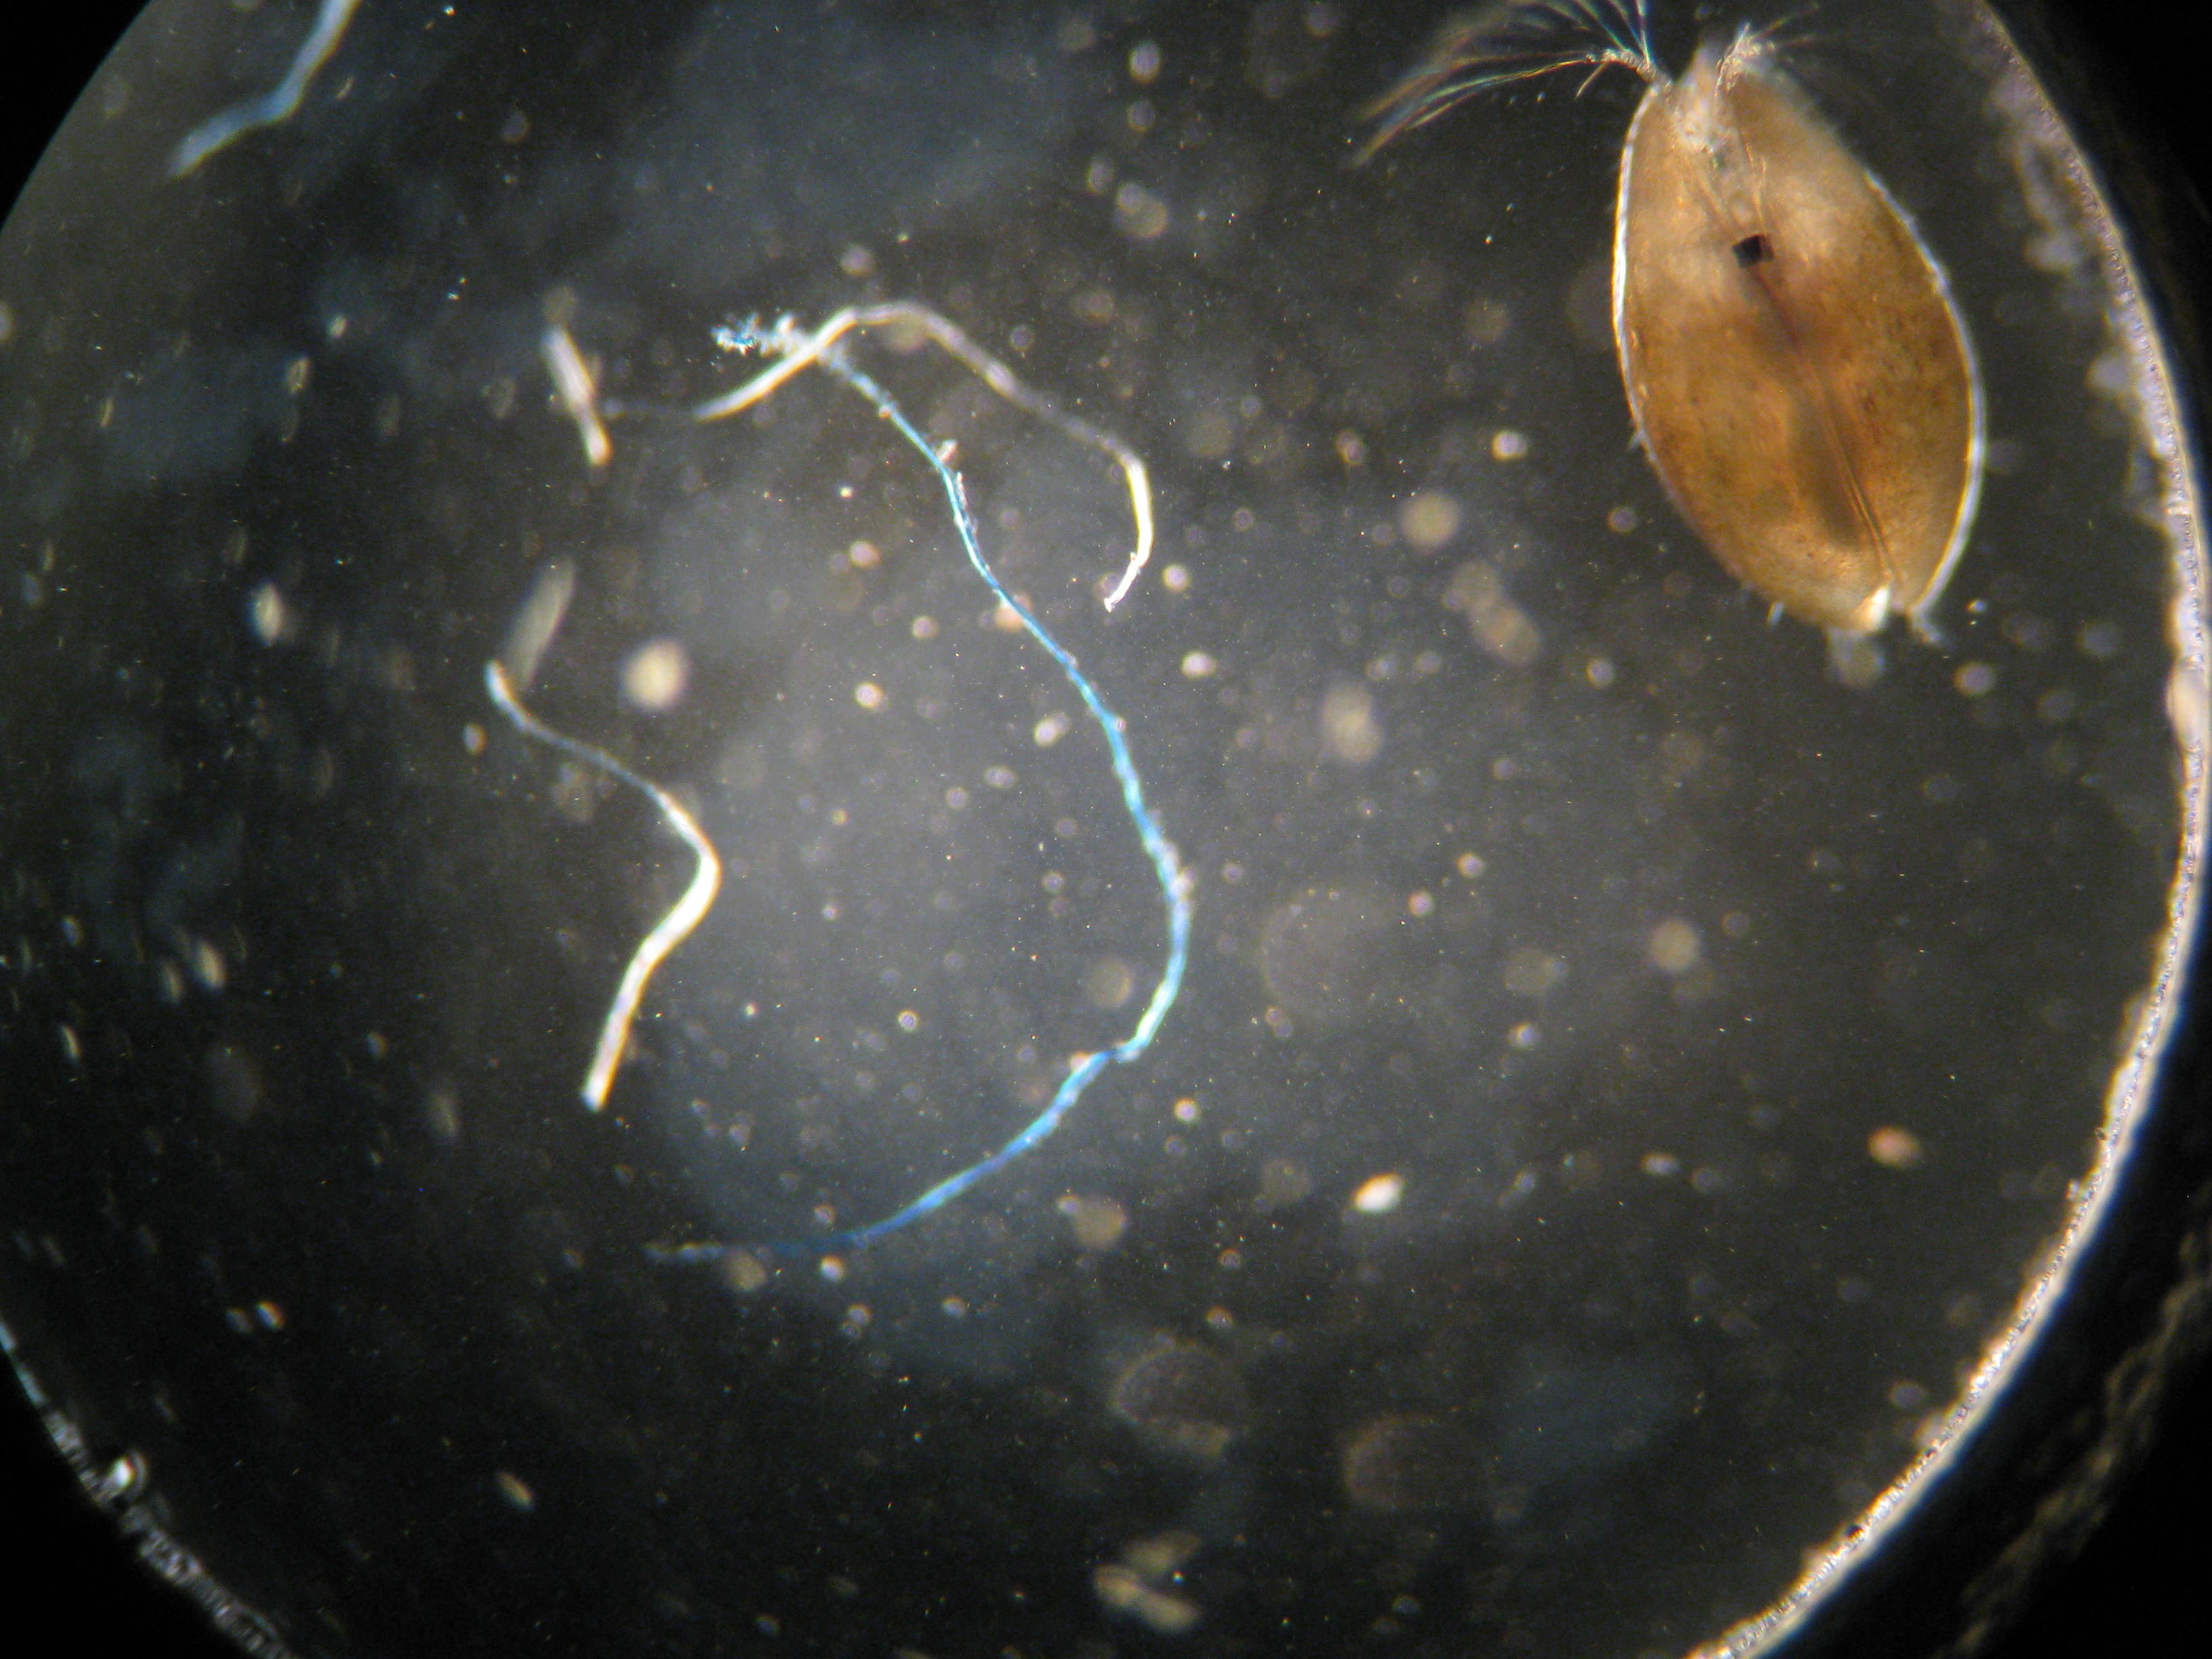 Ostracod at 40x using Canon SD850IS camera